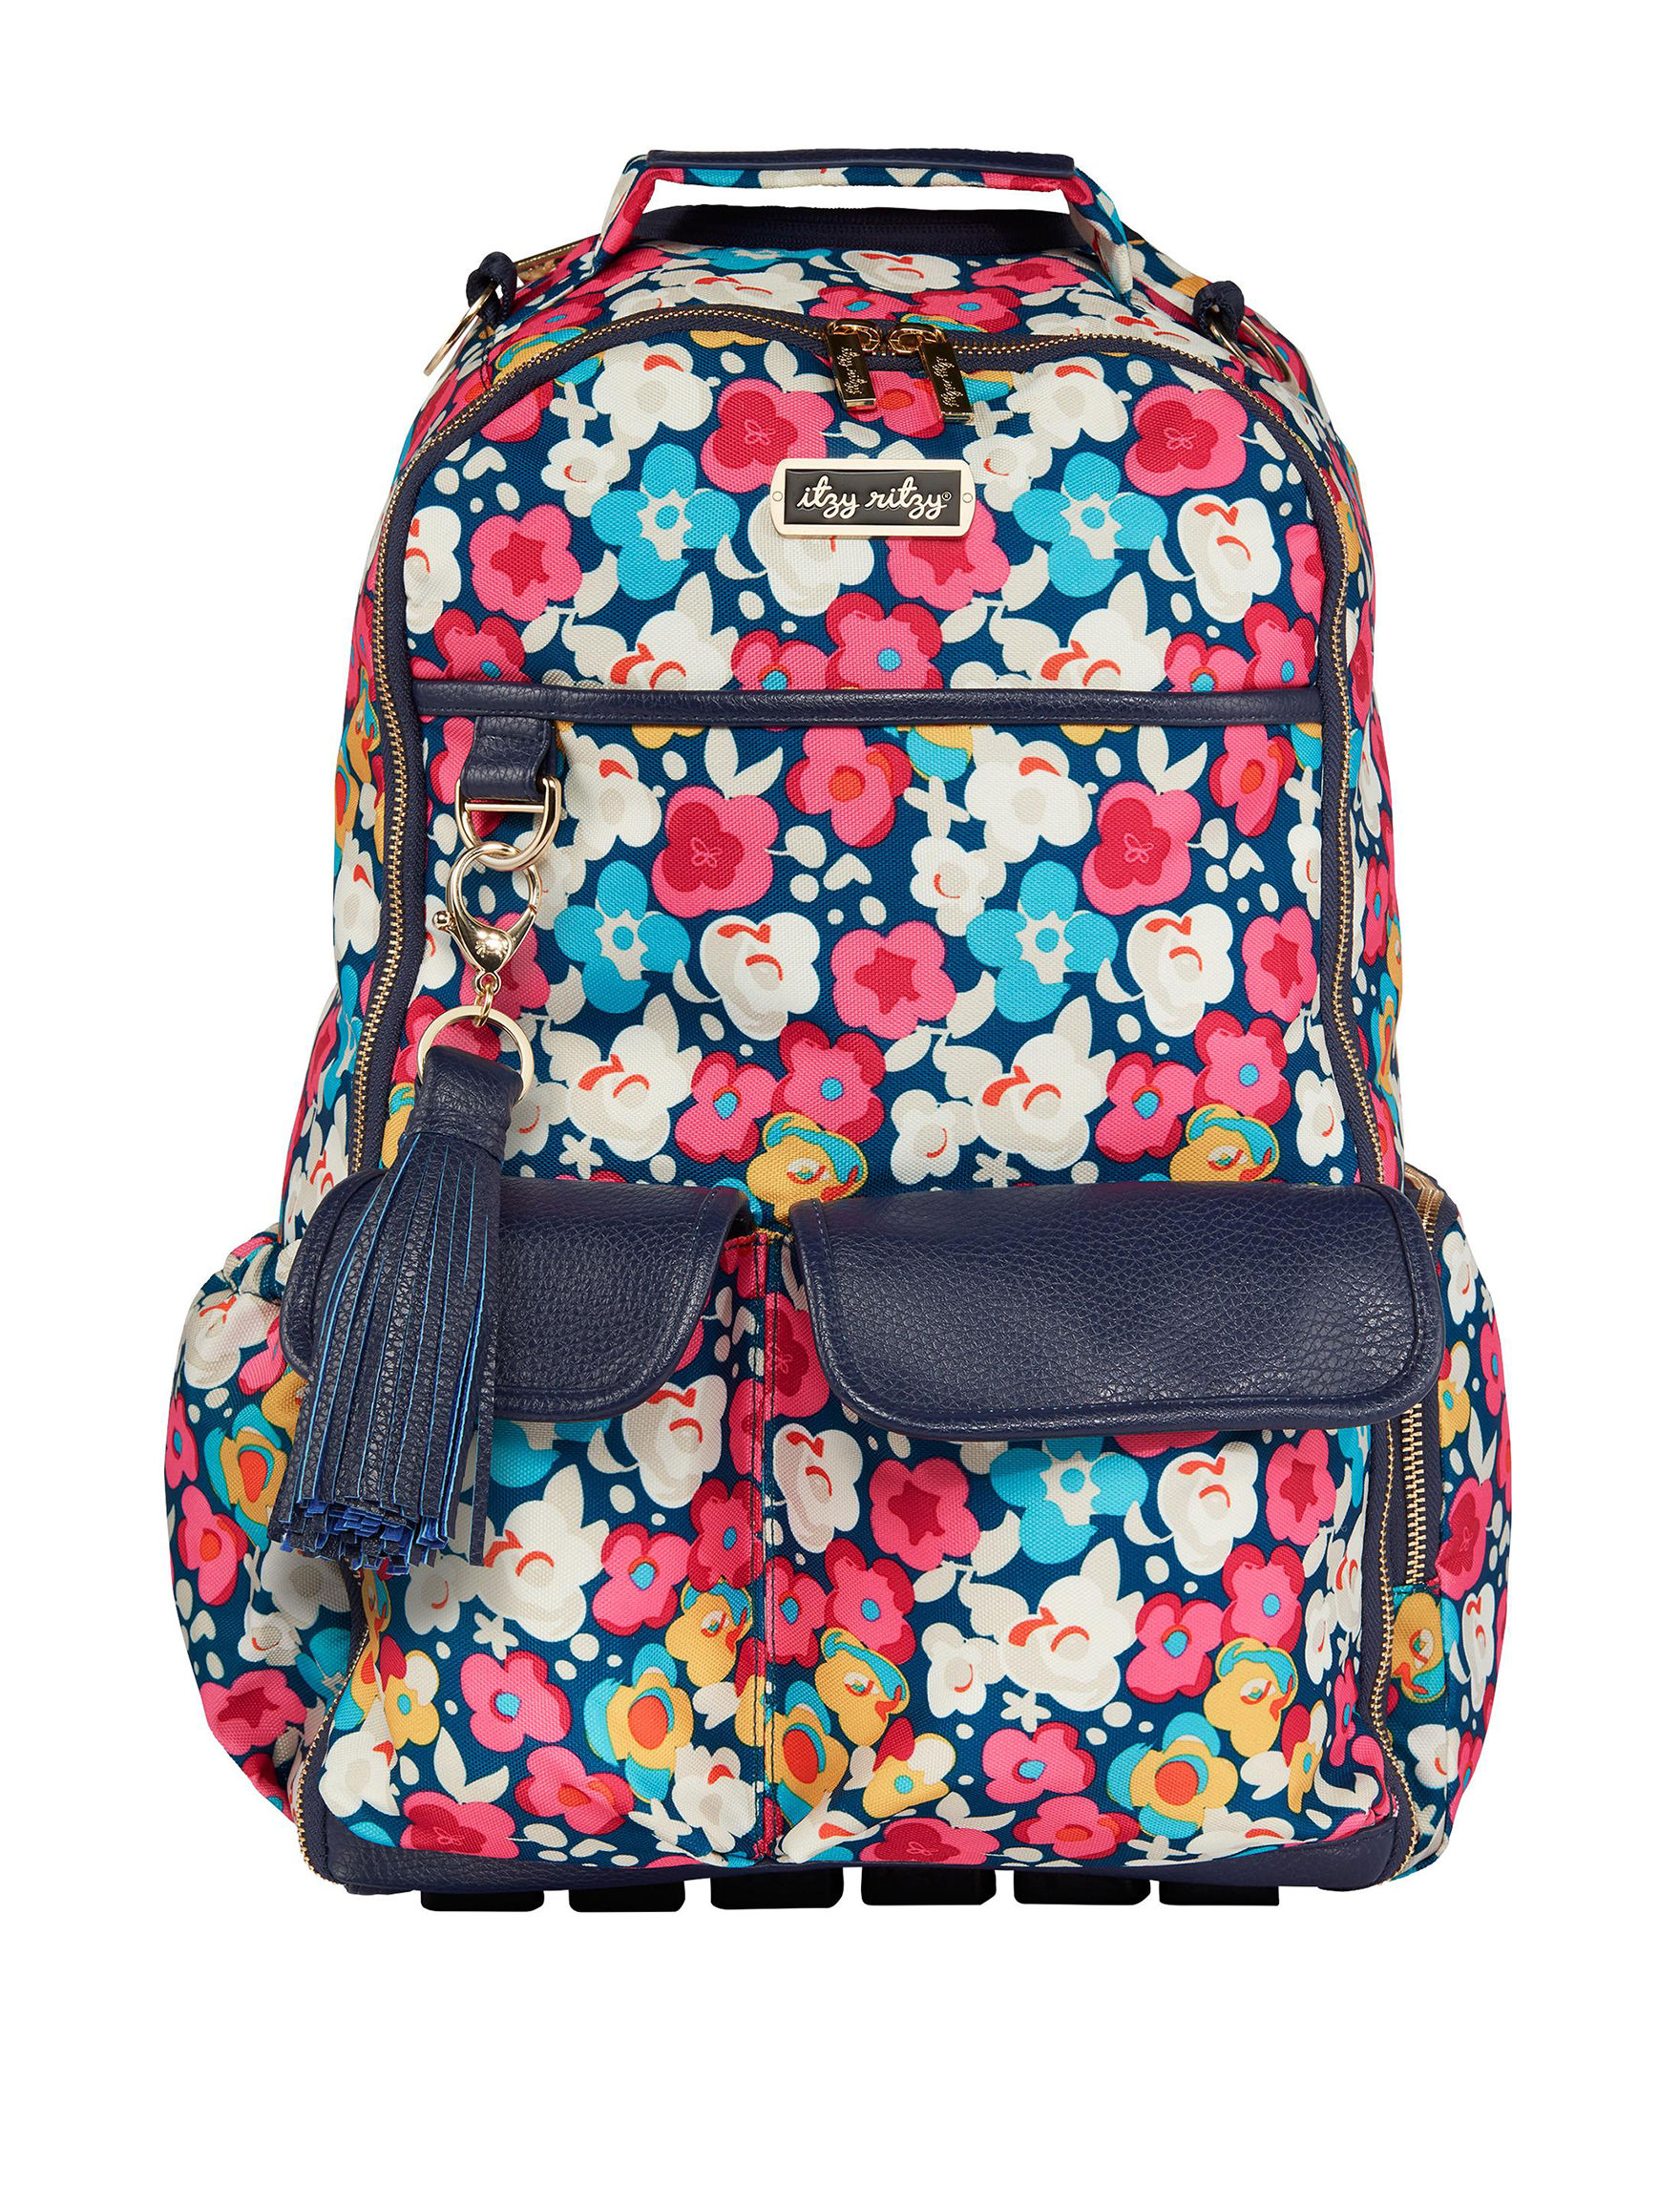 Itzy Ritzy Pink Floral Bookbags & Backpacks Diaper Bags